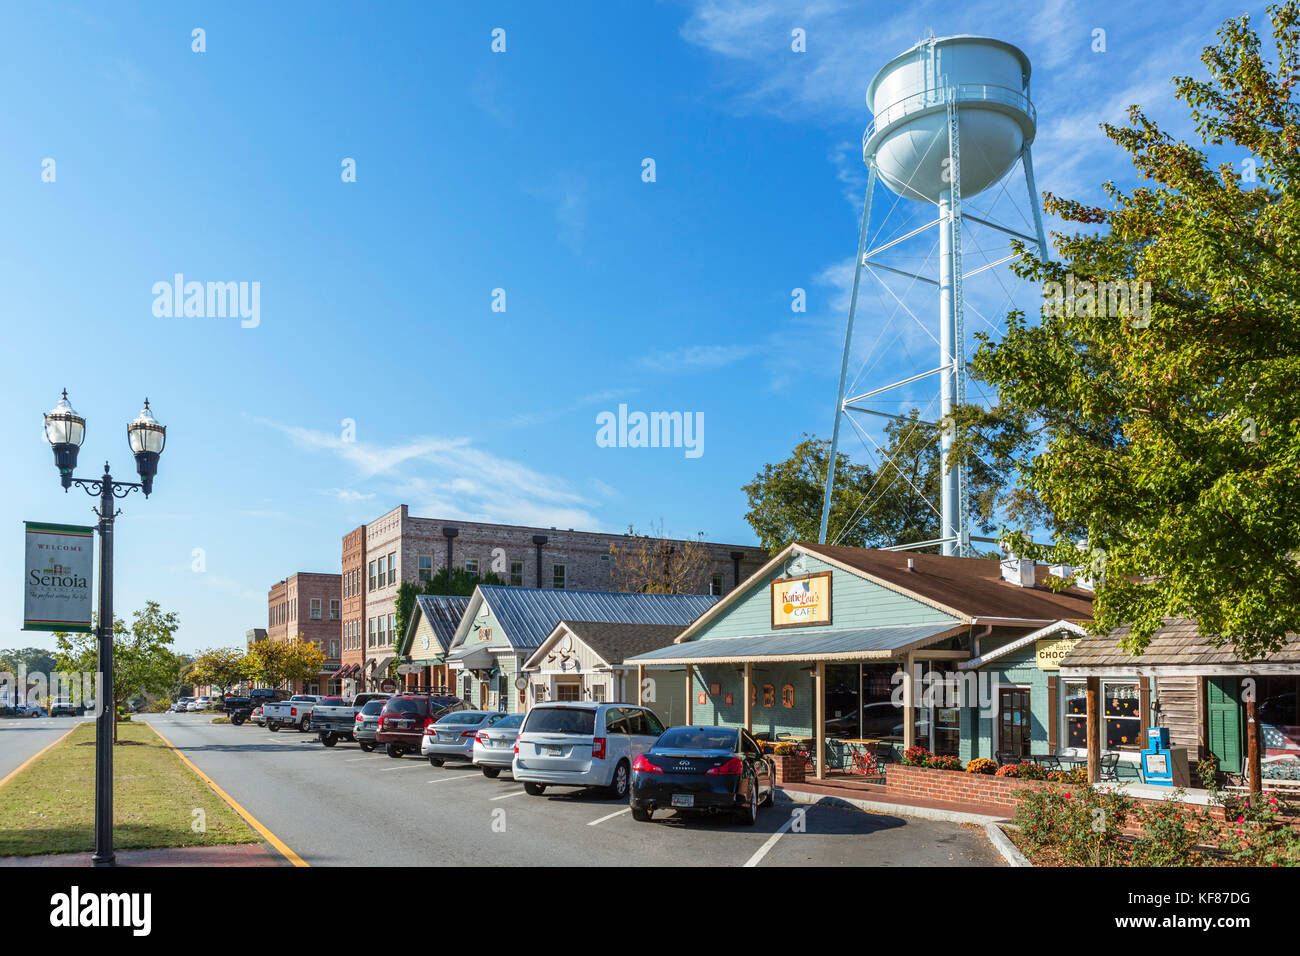 Main Street, Senoia, Georgia, USA. Senoia is the location for the town of Woodbury in the TV series 'The Walking - Stock Image